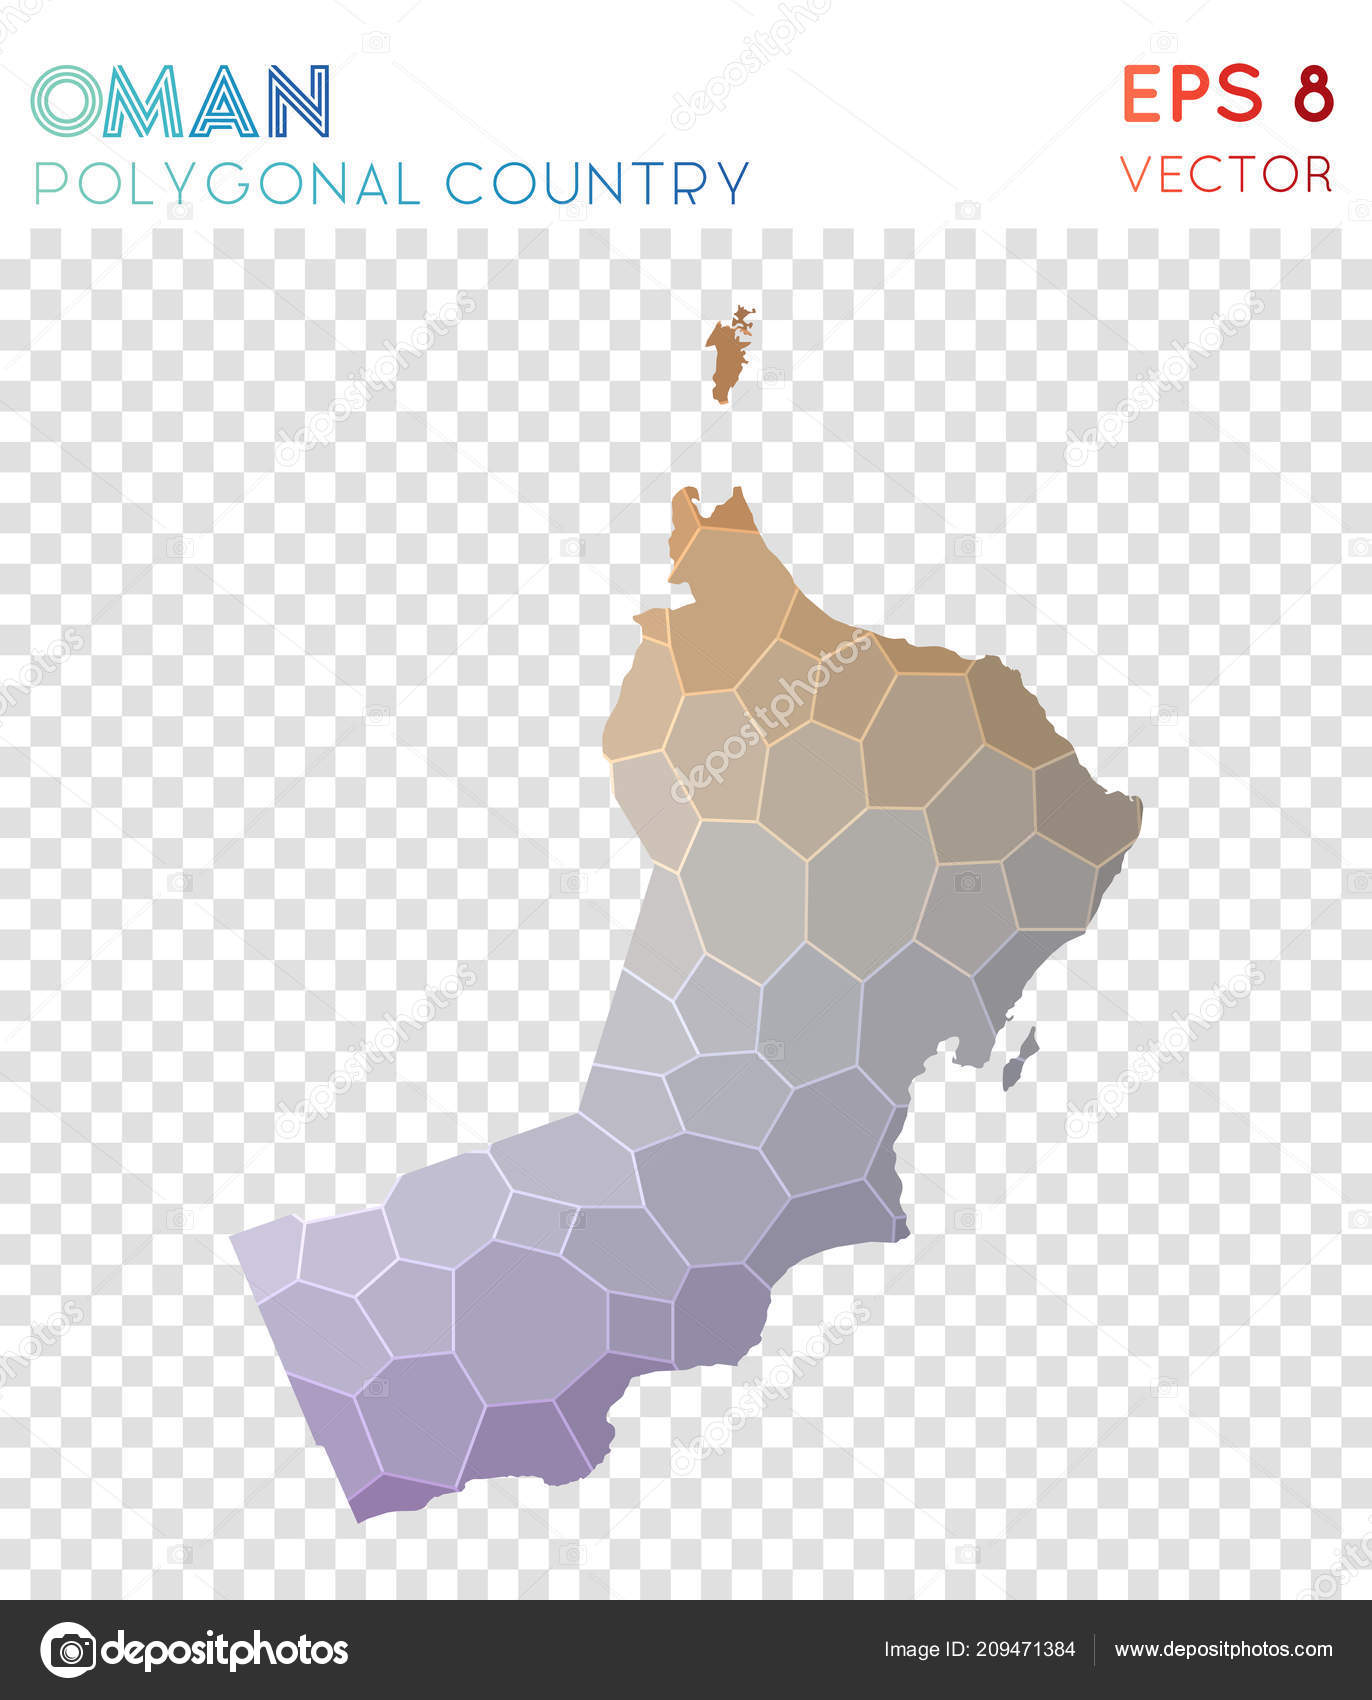 Lieblich Oman Polygonal Map, Mosaic Style Country. Wonderful Low Poly Style, Modern  Design. Oman Polygonal Map For Infographics Or Presentation. U2014 Vetor De  Gagarych